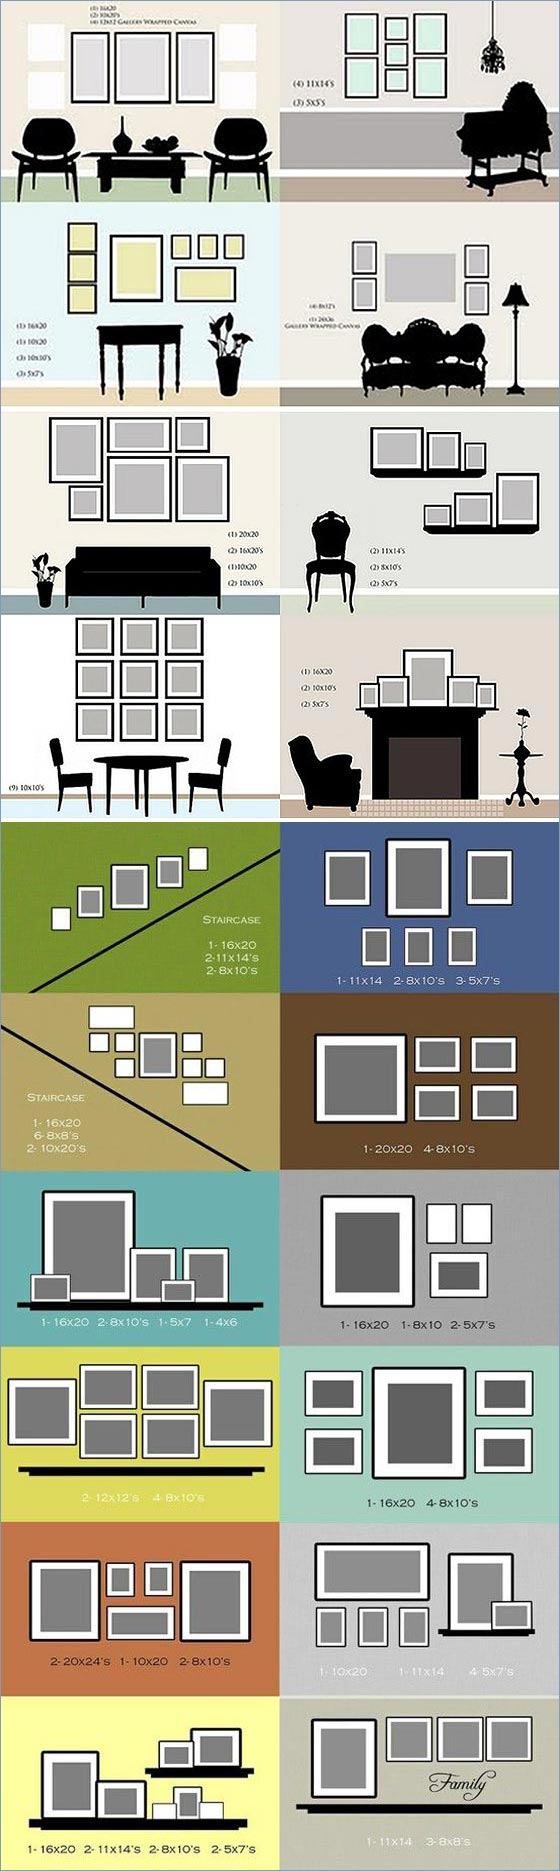 picture-frames-and-photo-frames-wall-hanging-ideas